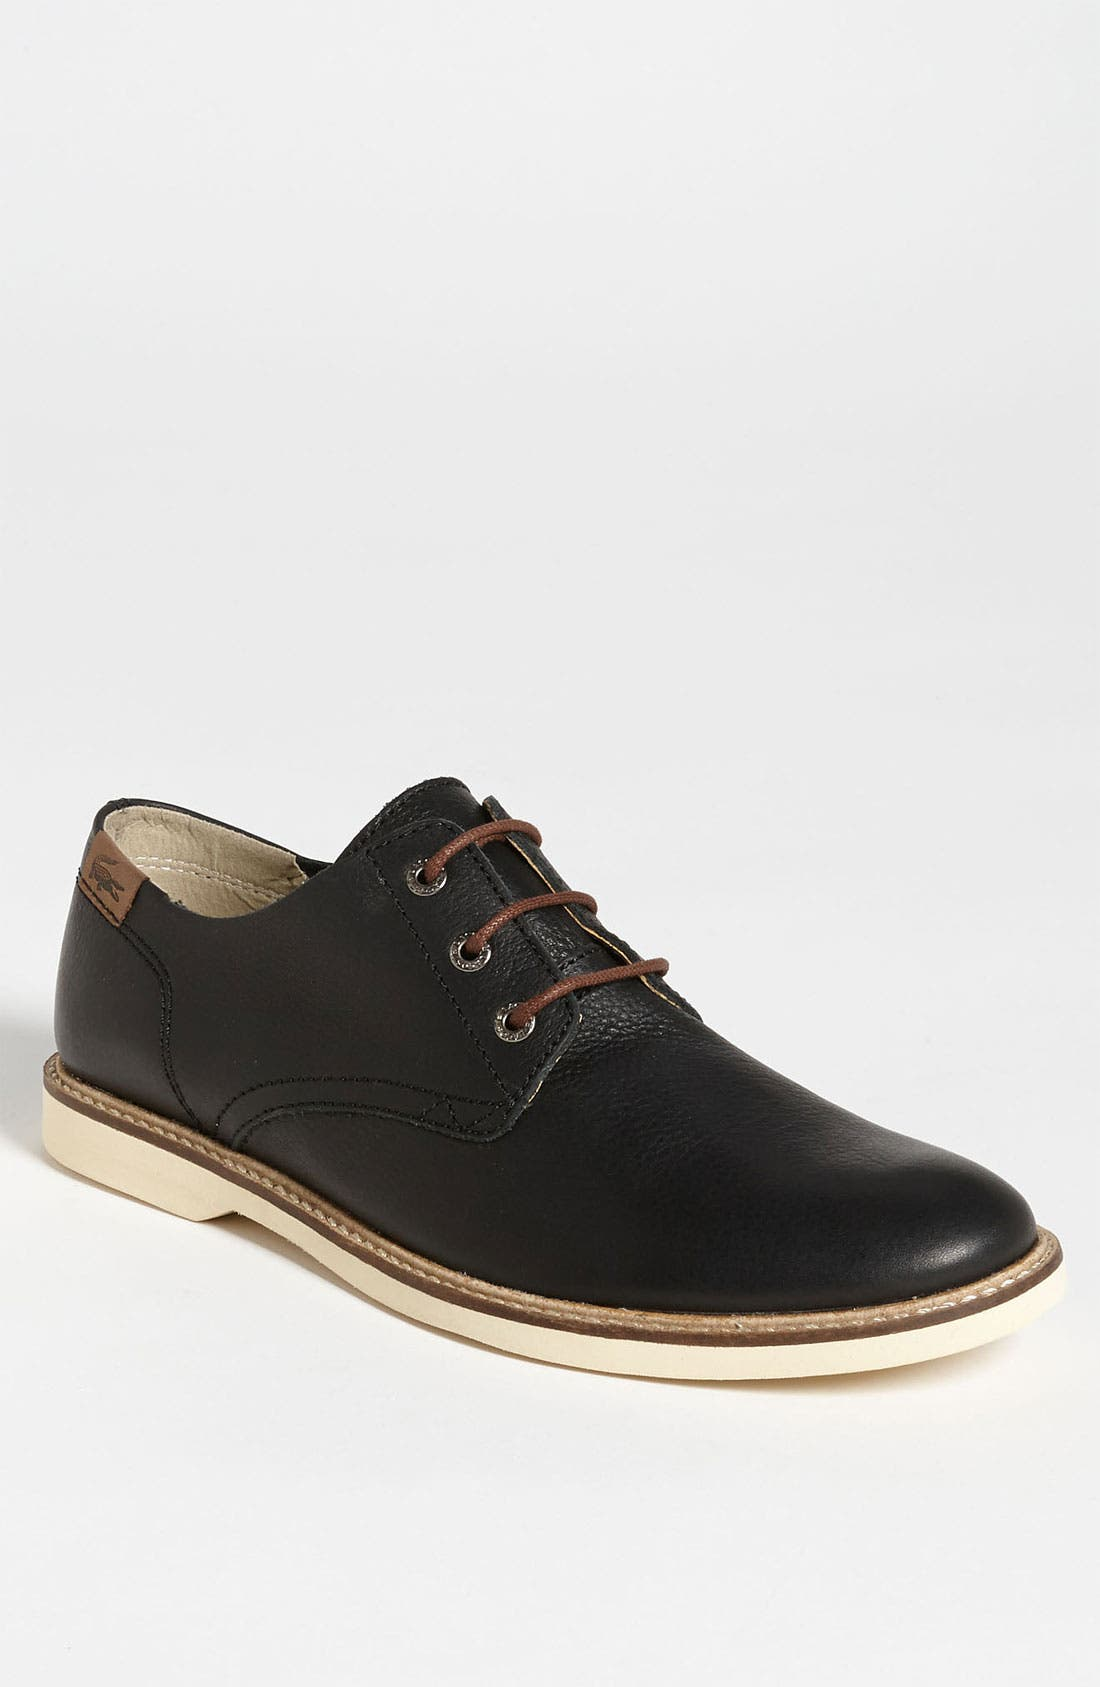 LACOSTE 'Sherbrooke 6' Oxford, Main, color, 008